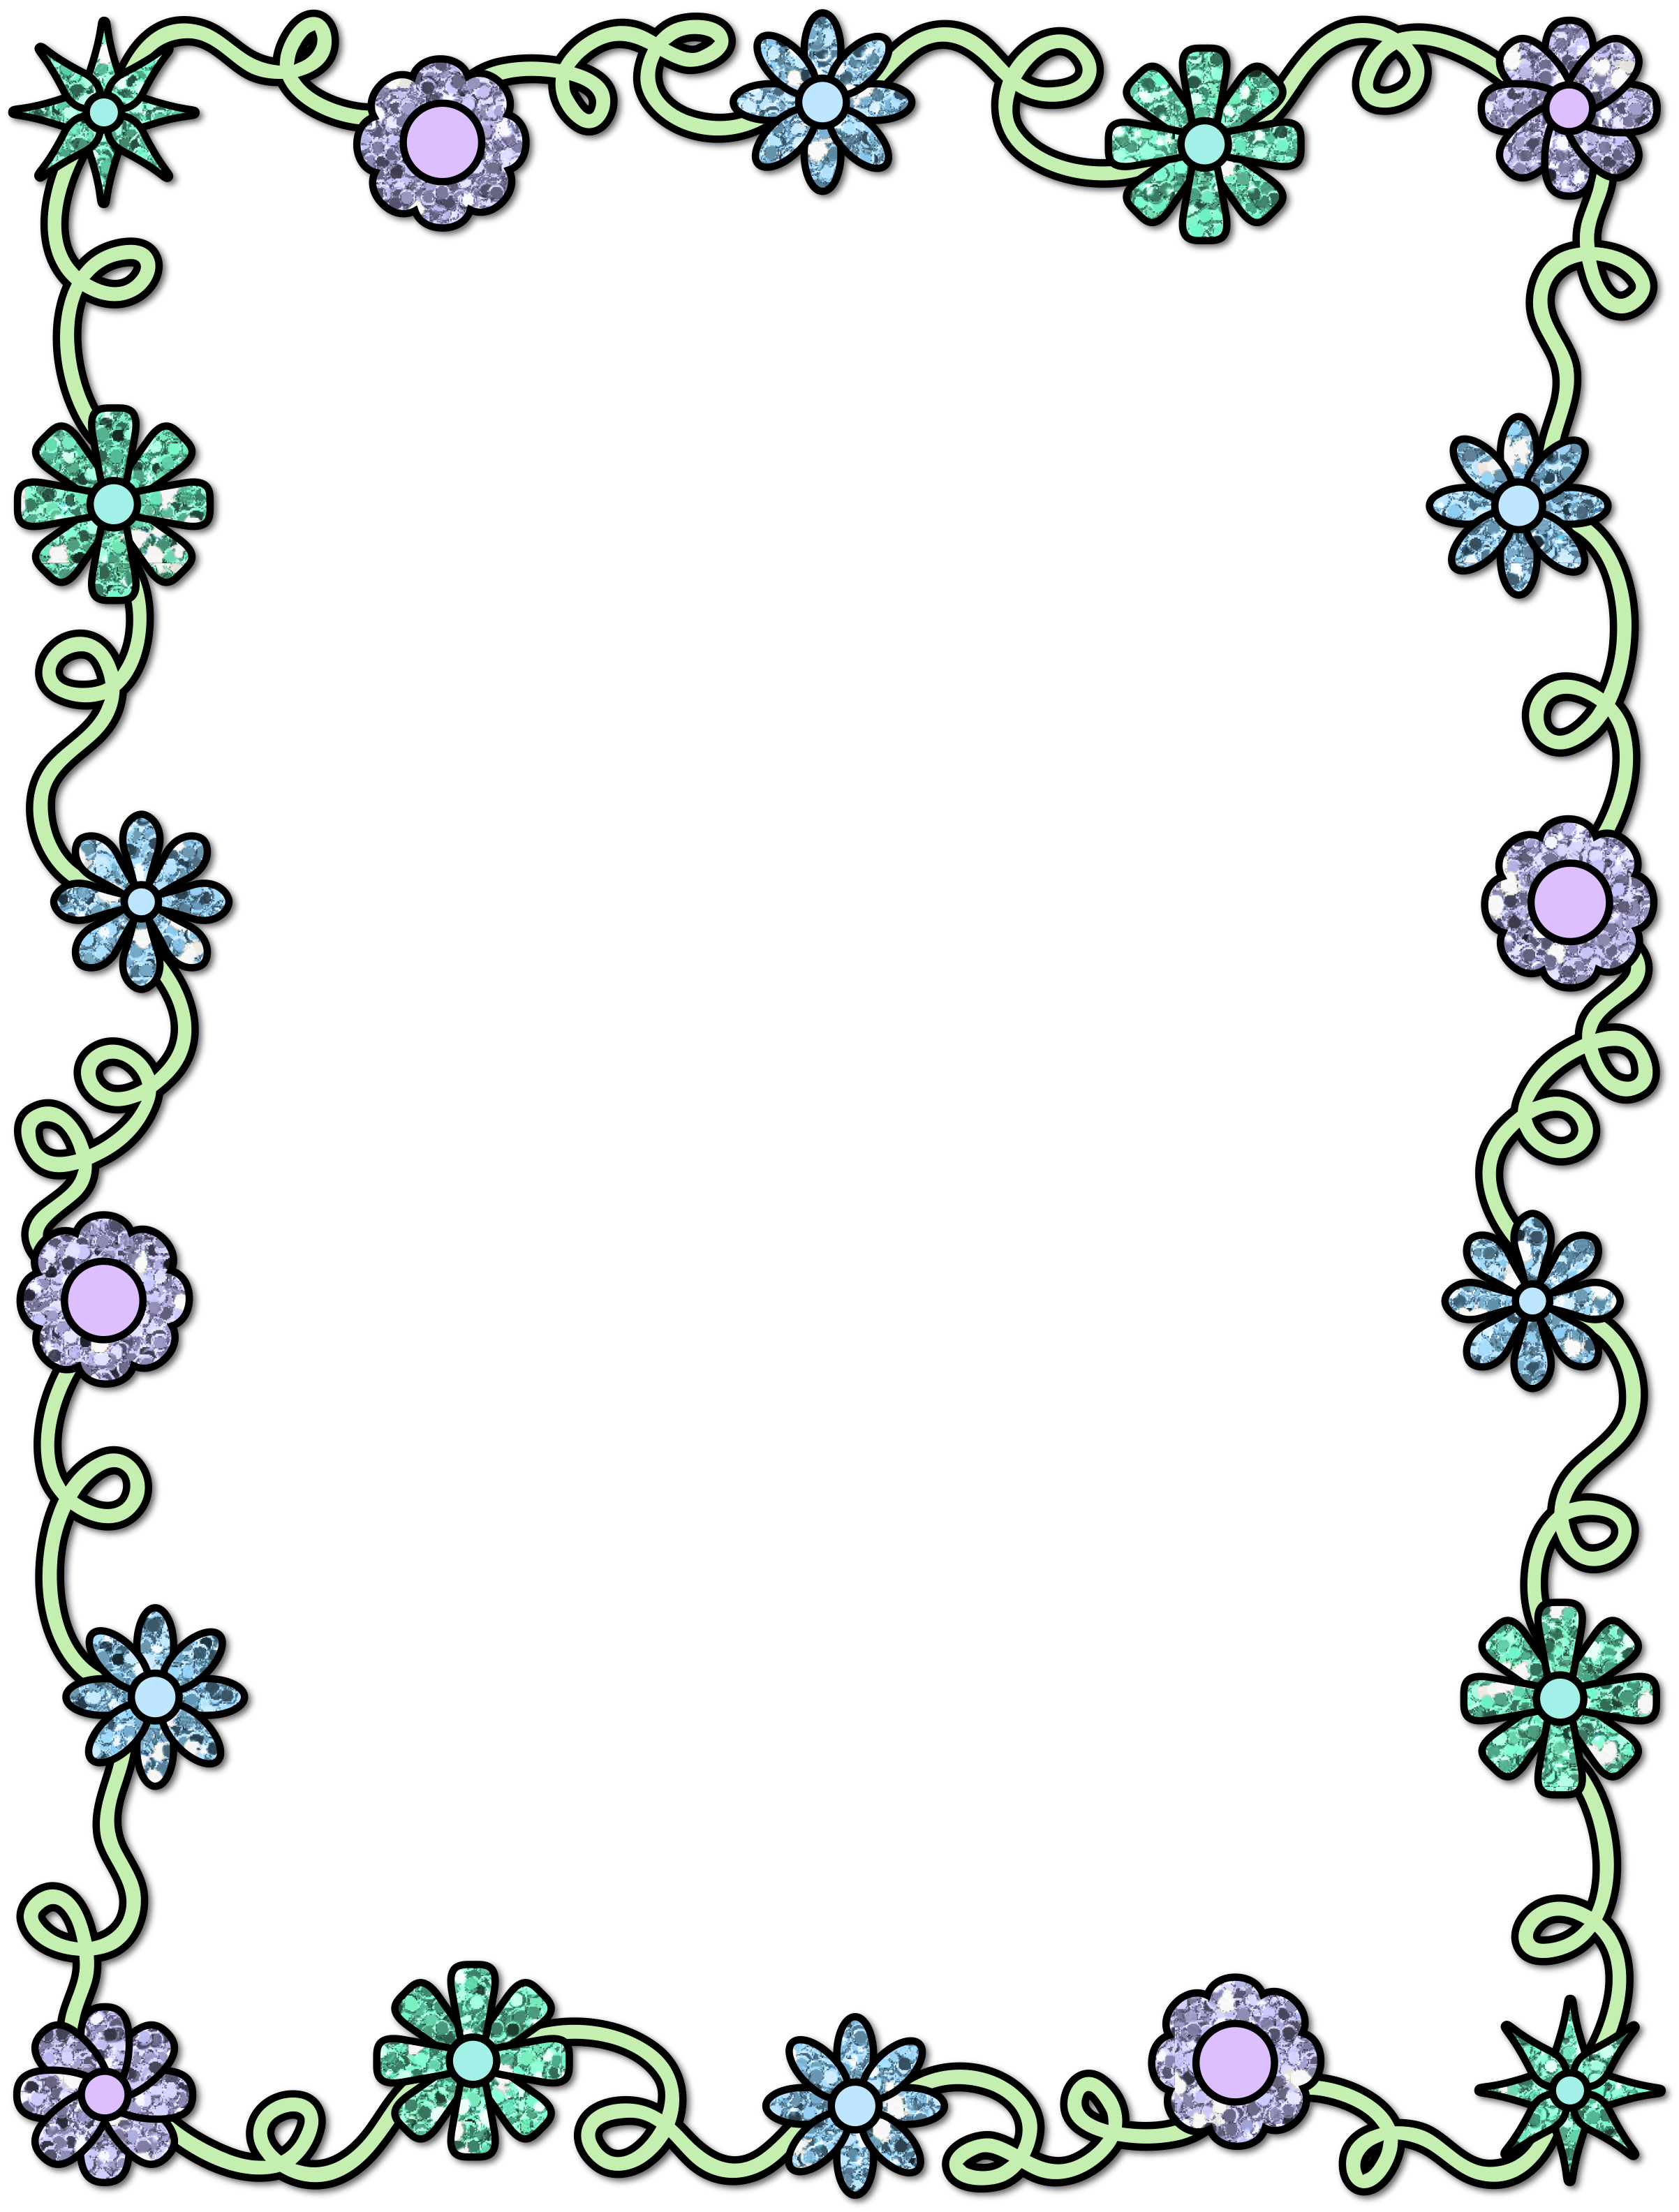 Snowflake clipart border you can write on clipart royalty free library Pin by Kristin Robson on clip art | Pinterest | Border design, Paper ... clipart royalty free library